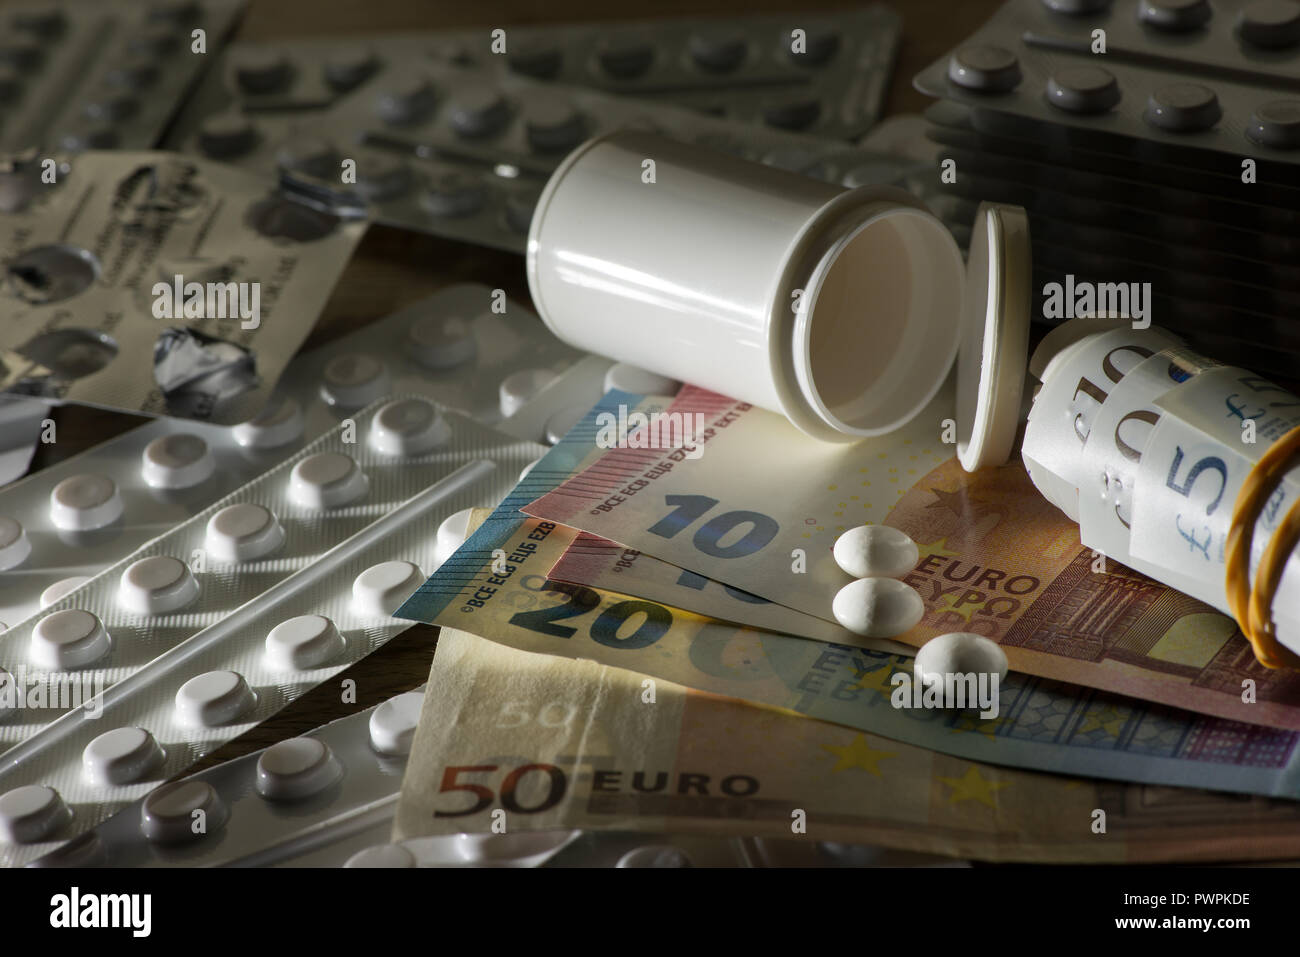 Money Sterling or Euros paid for prescription only medical